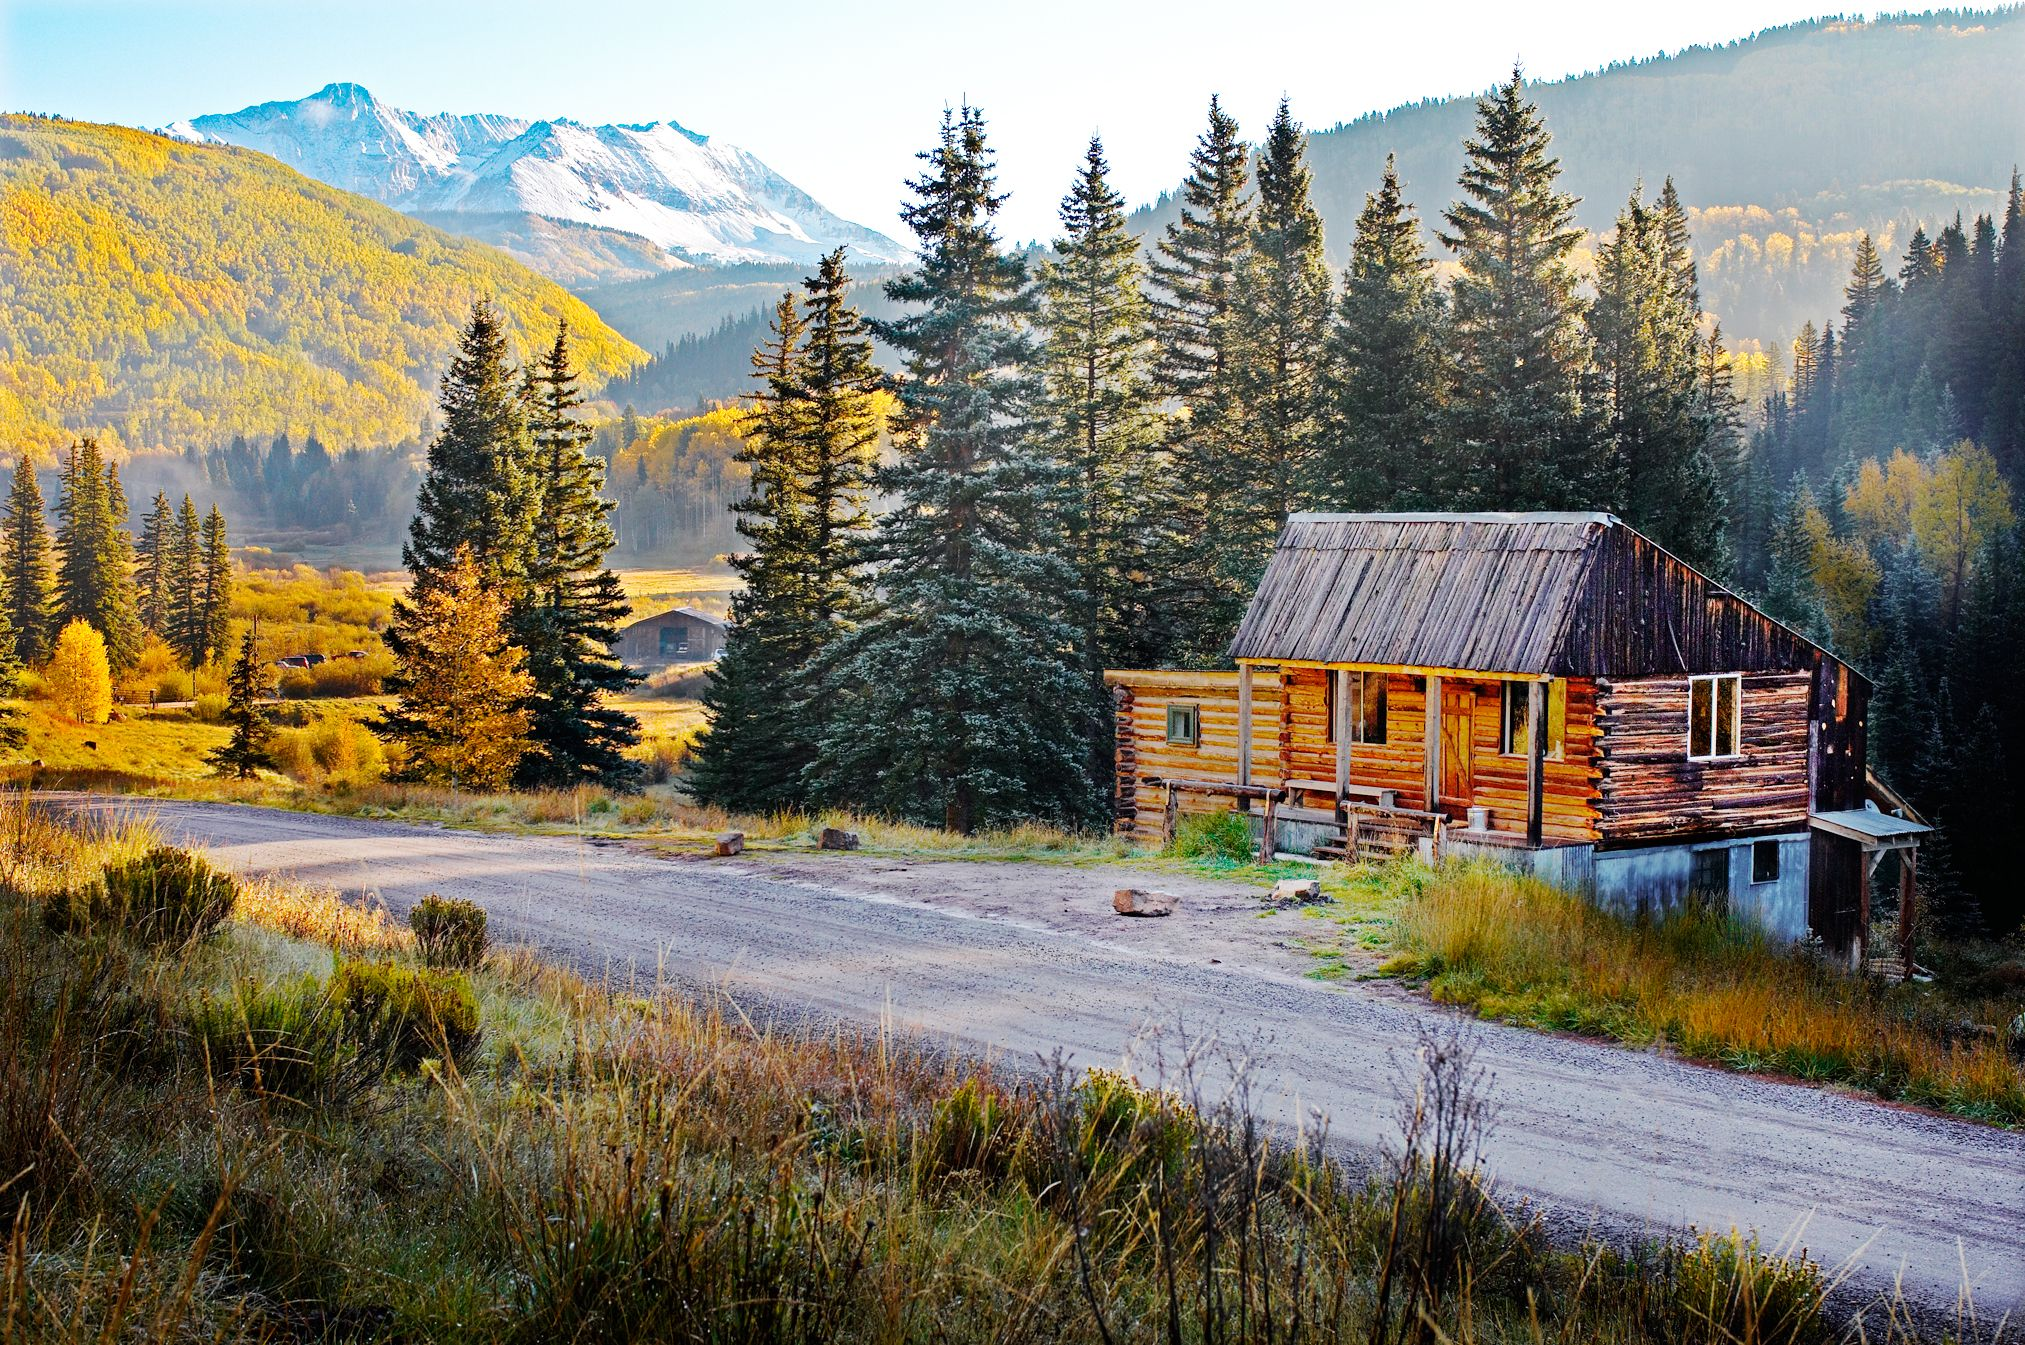 hot away this a get stunning blog luxurious cabins escape couples looking with of it the from winter private romantic two denver rocky cabin colorado tucked tub all to getaways for in mountains provides near secluded log